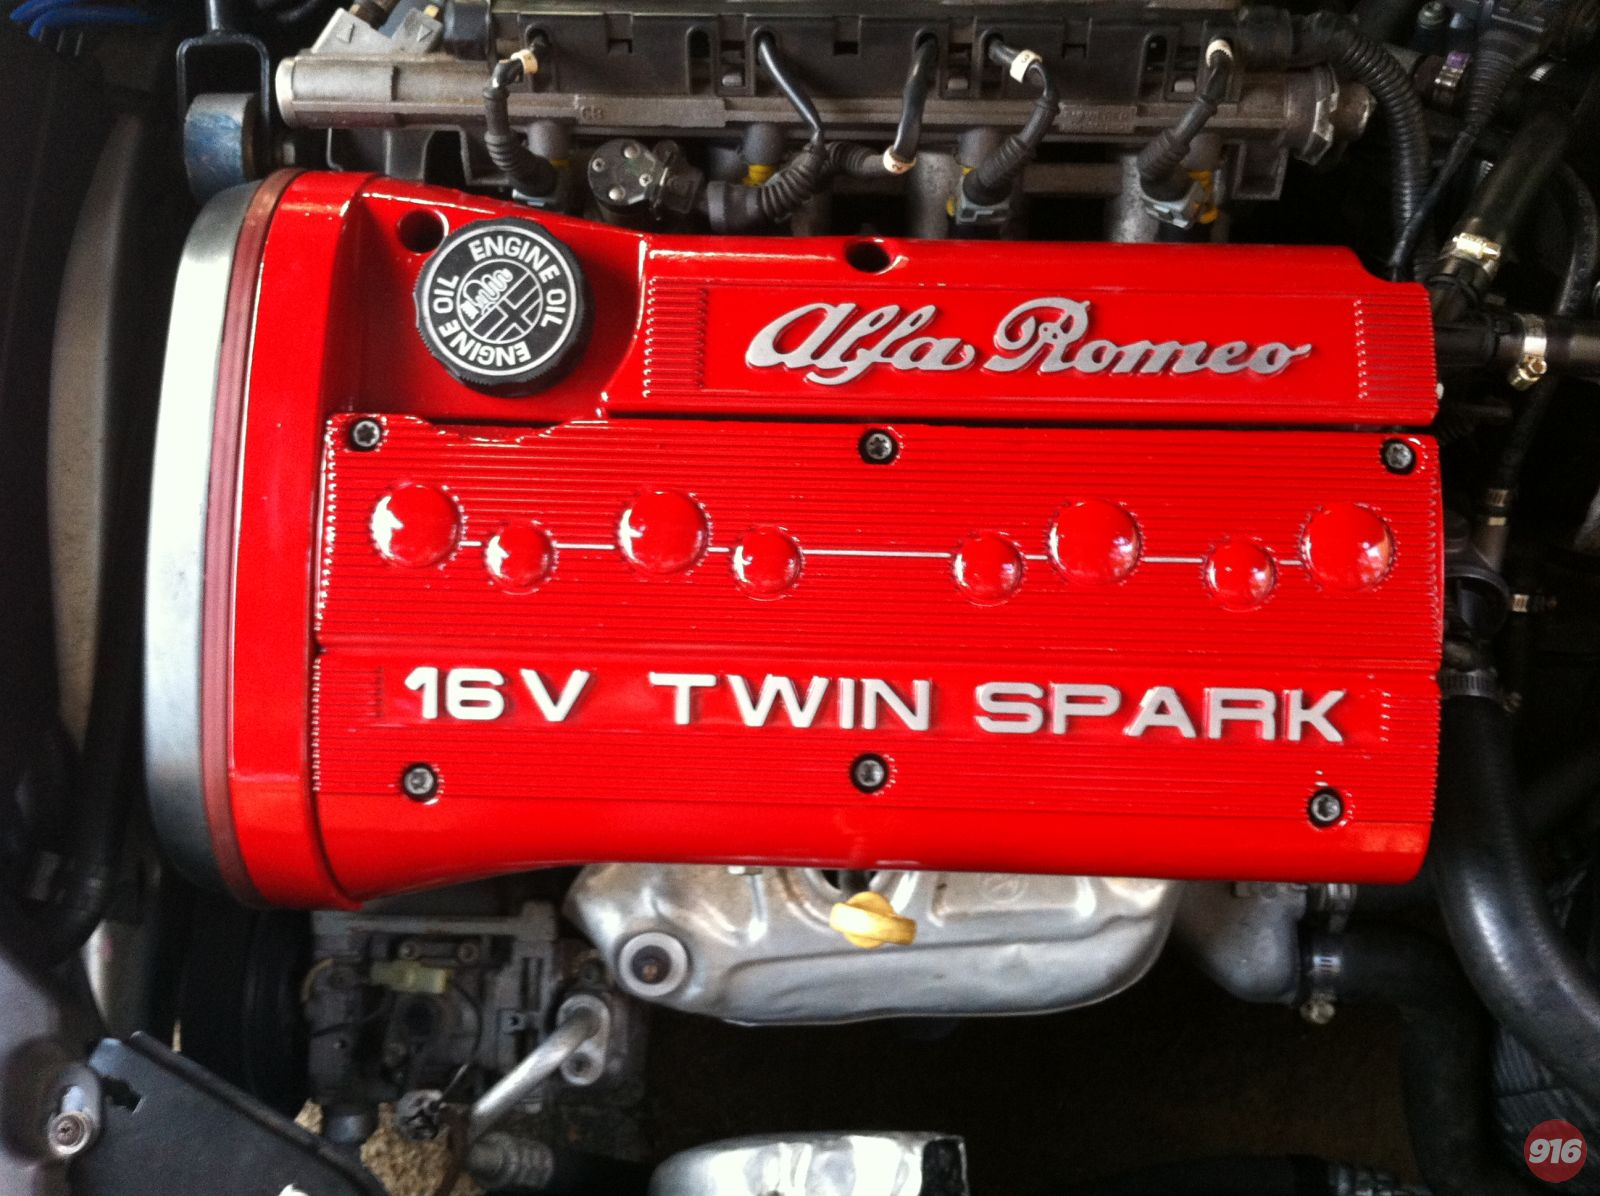 CF1 twin spark engine cover red